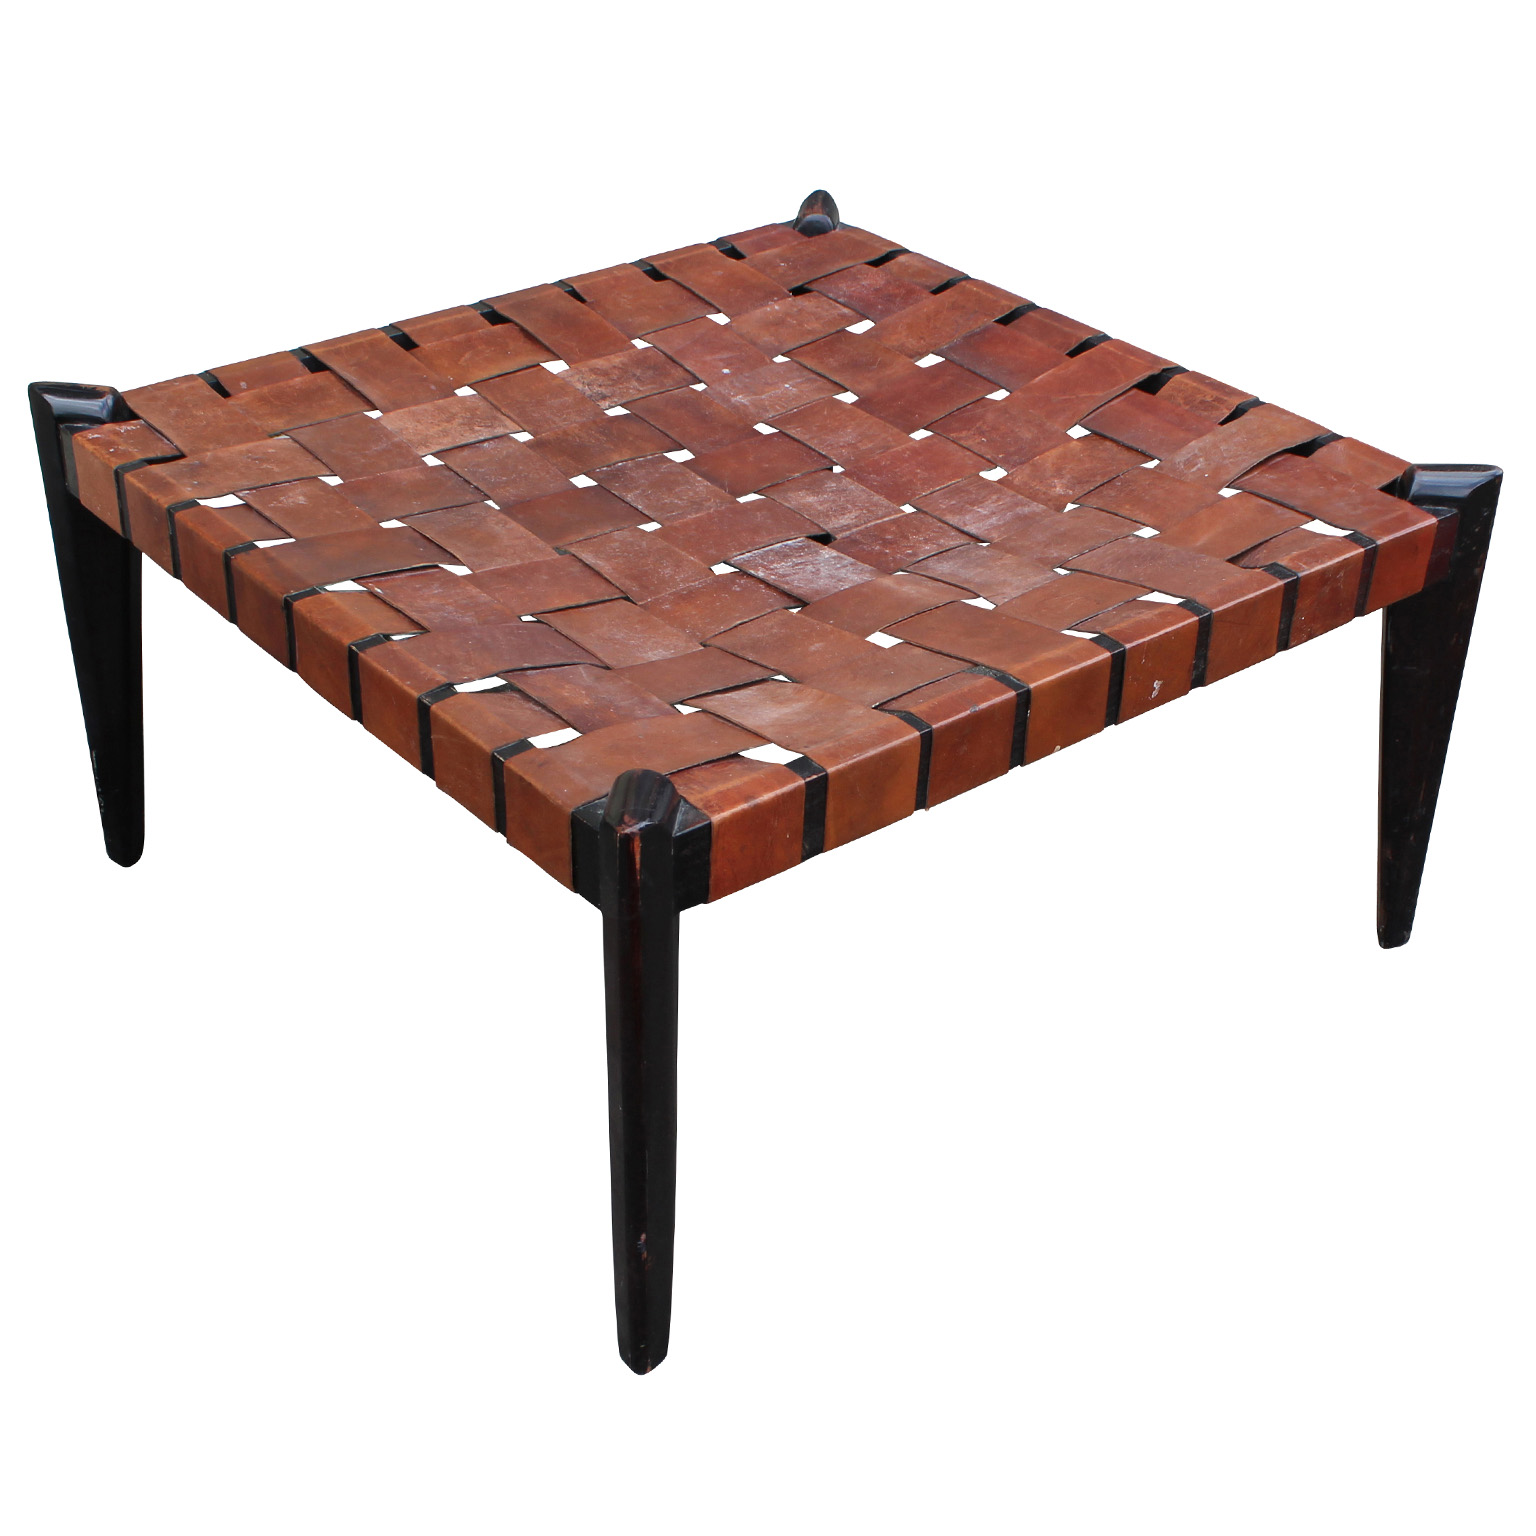 Fabulous large square woven leather bench or ottoman Square leather coffee table